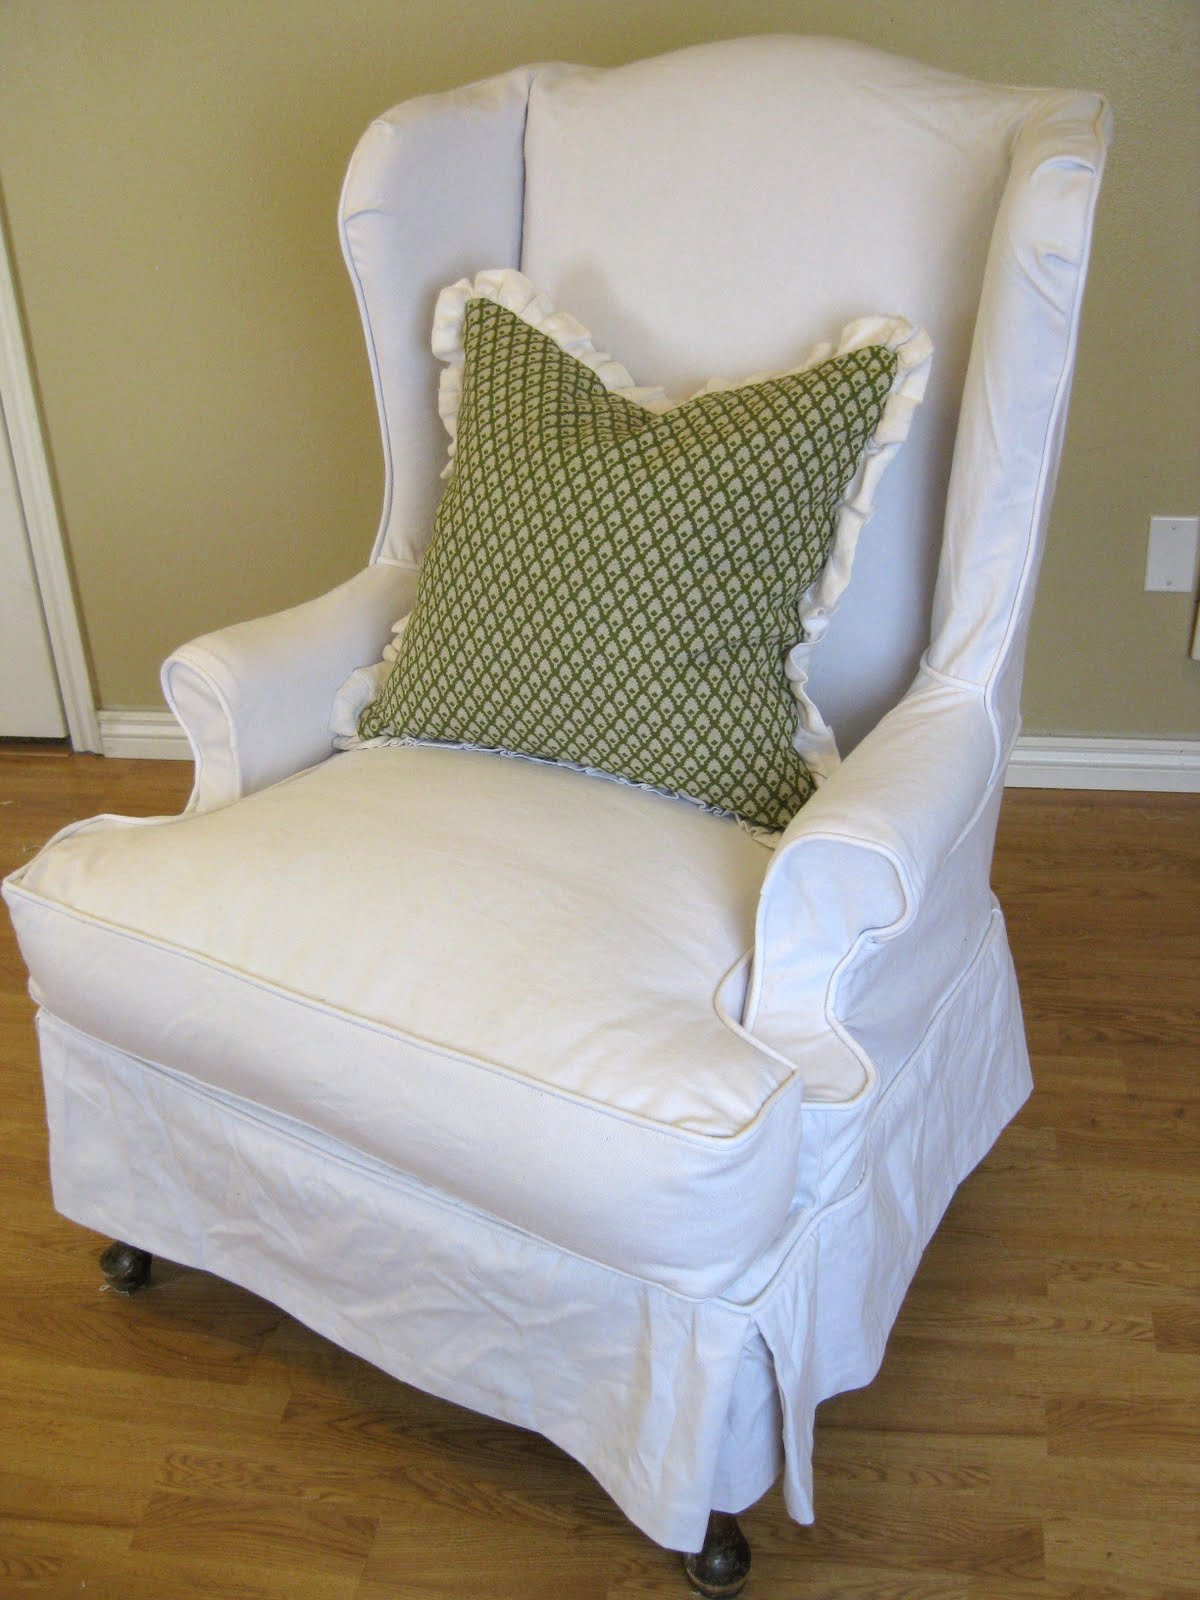 White Slip Cover For Chair In Wingback Design And Green Pillow